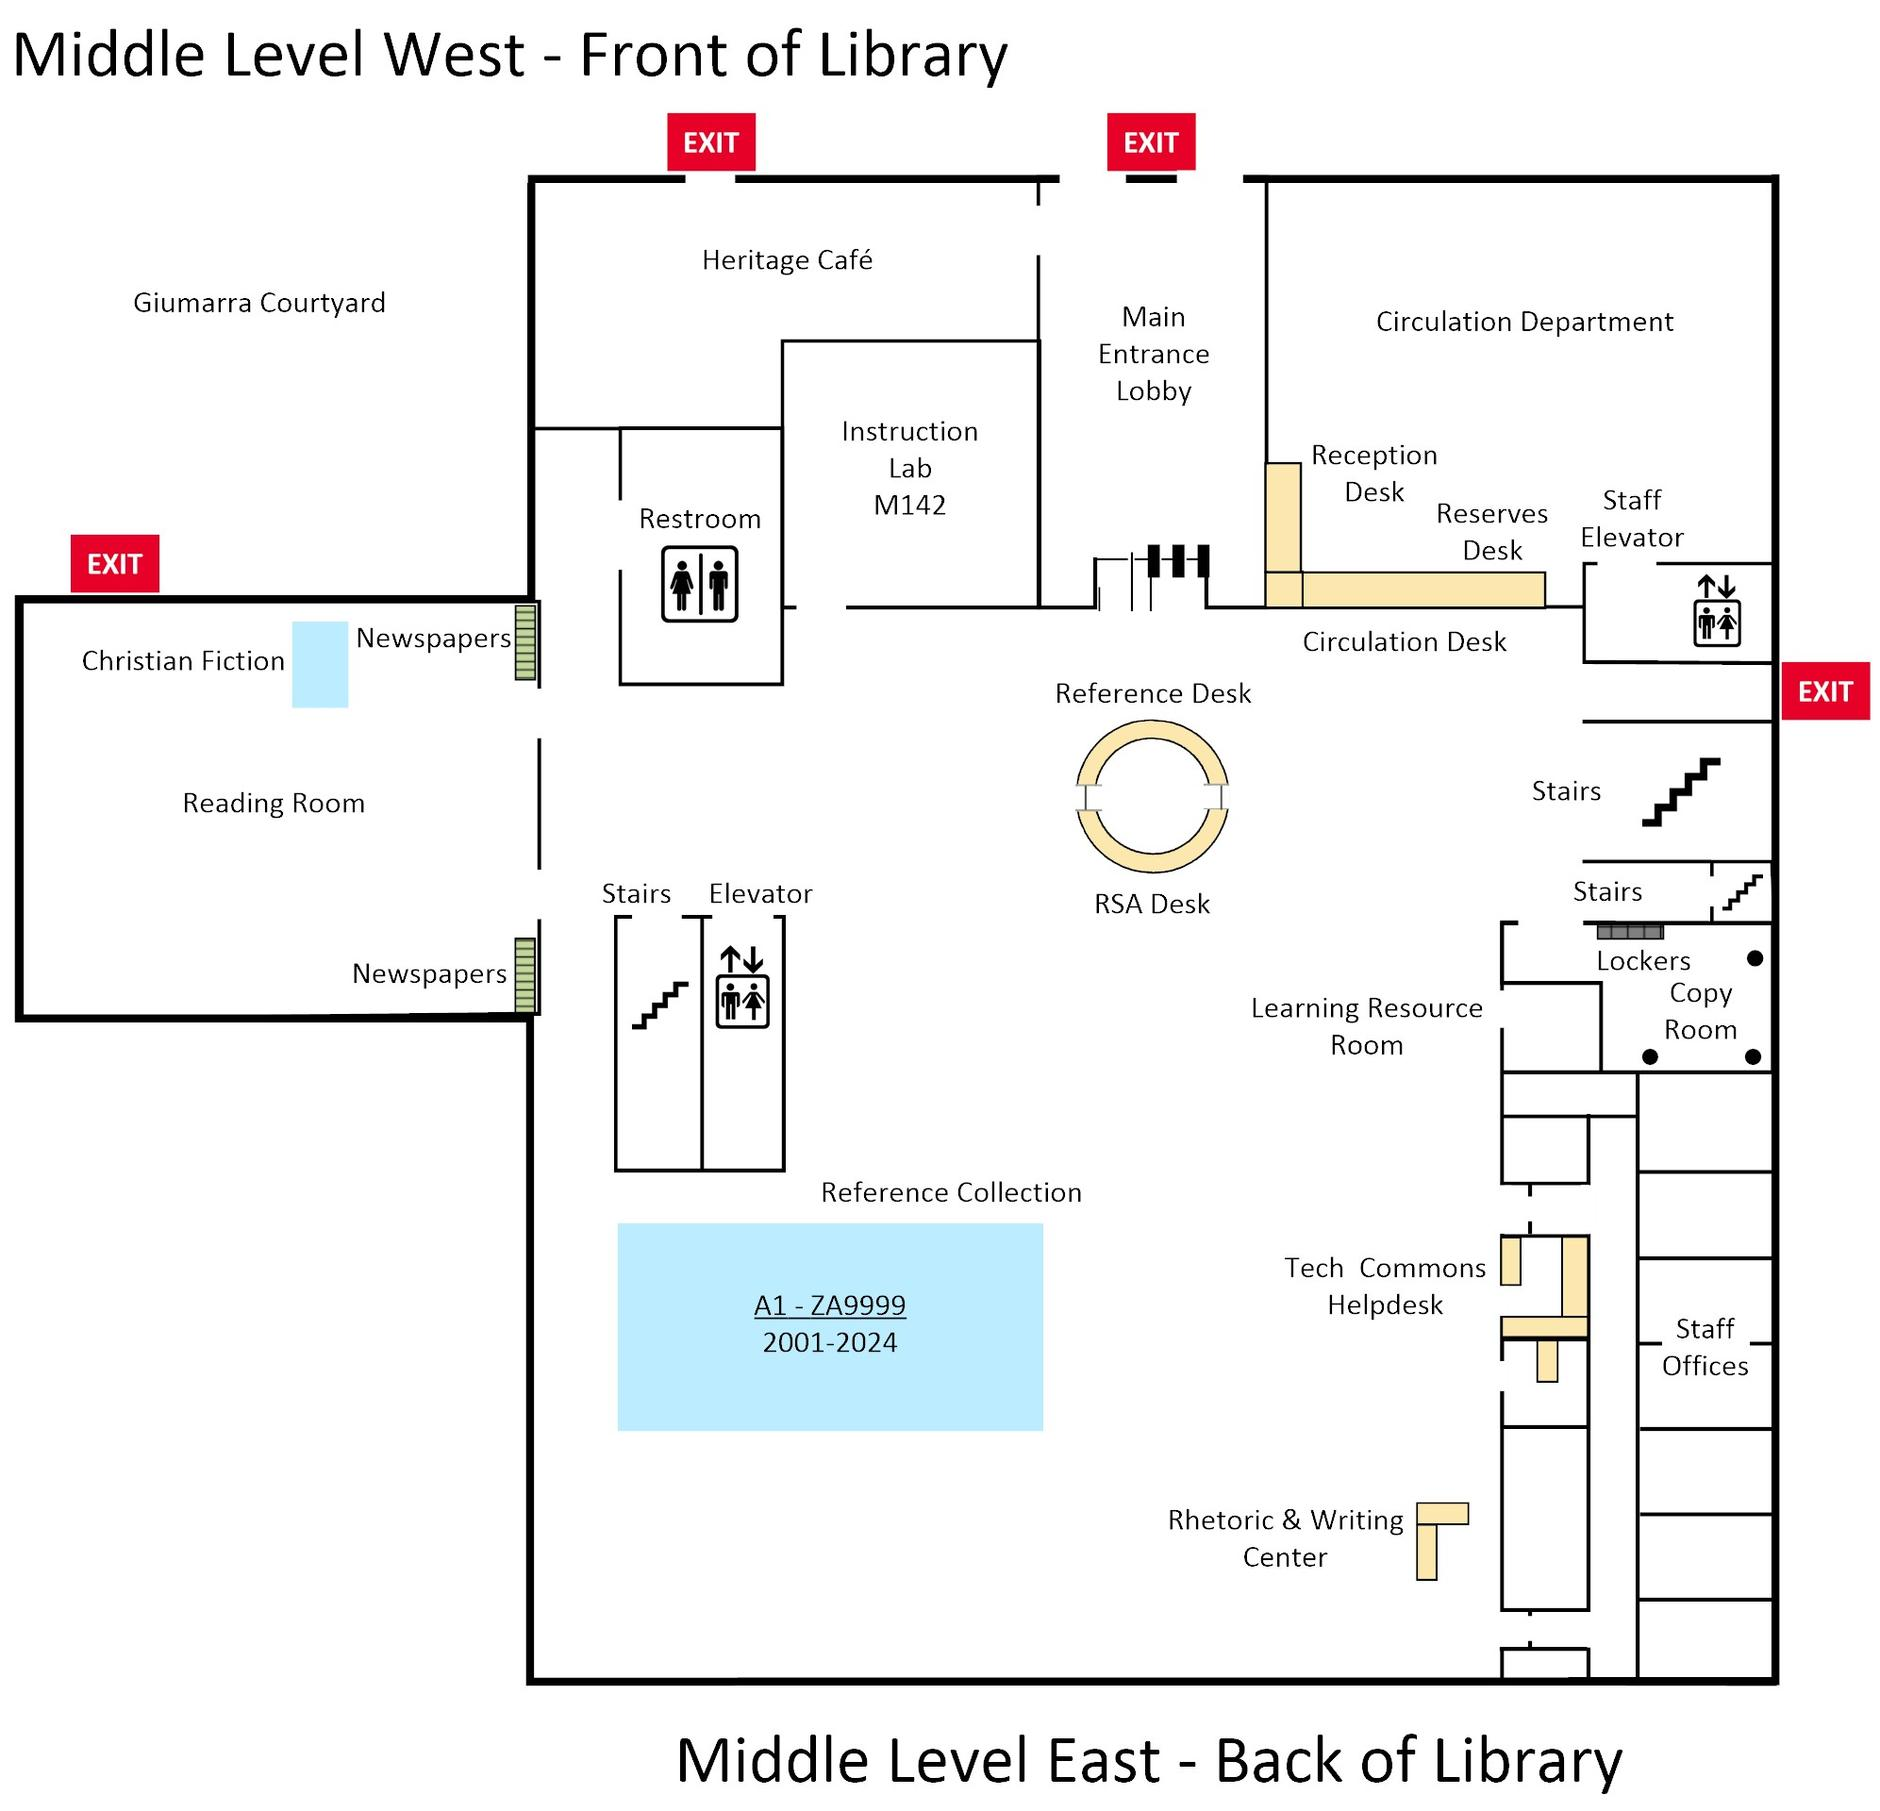 Full size floor plan for middle level of Biola's library